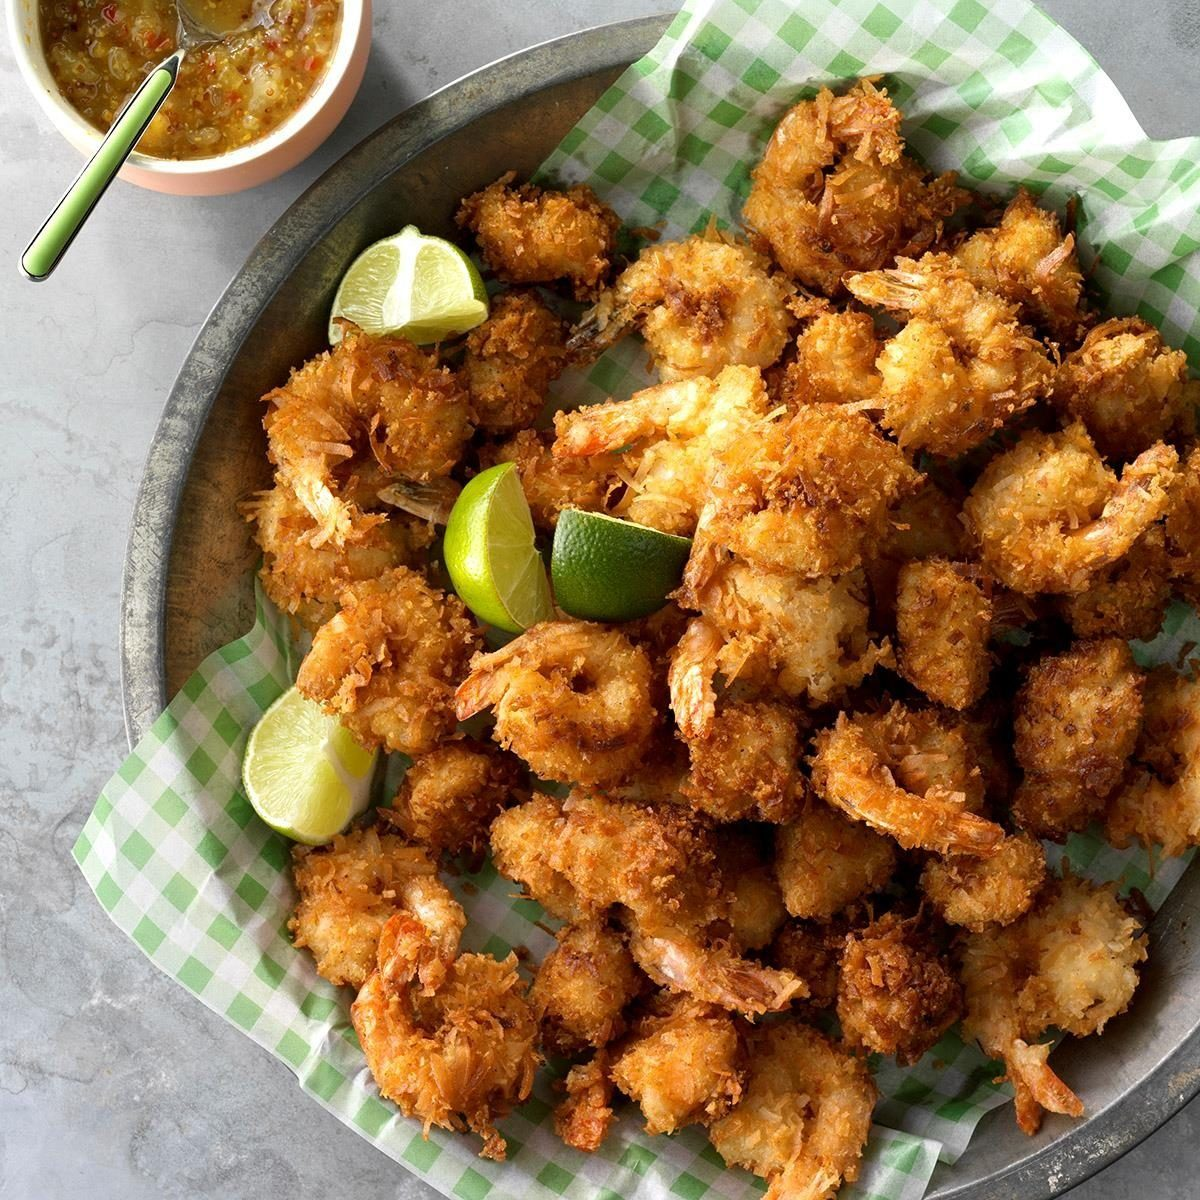 Coconut Chicken And Shrimp Exps Thfm18 203587 C09 15 7b 5